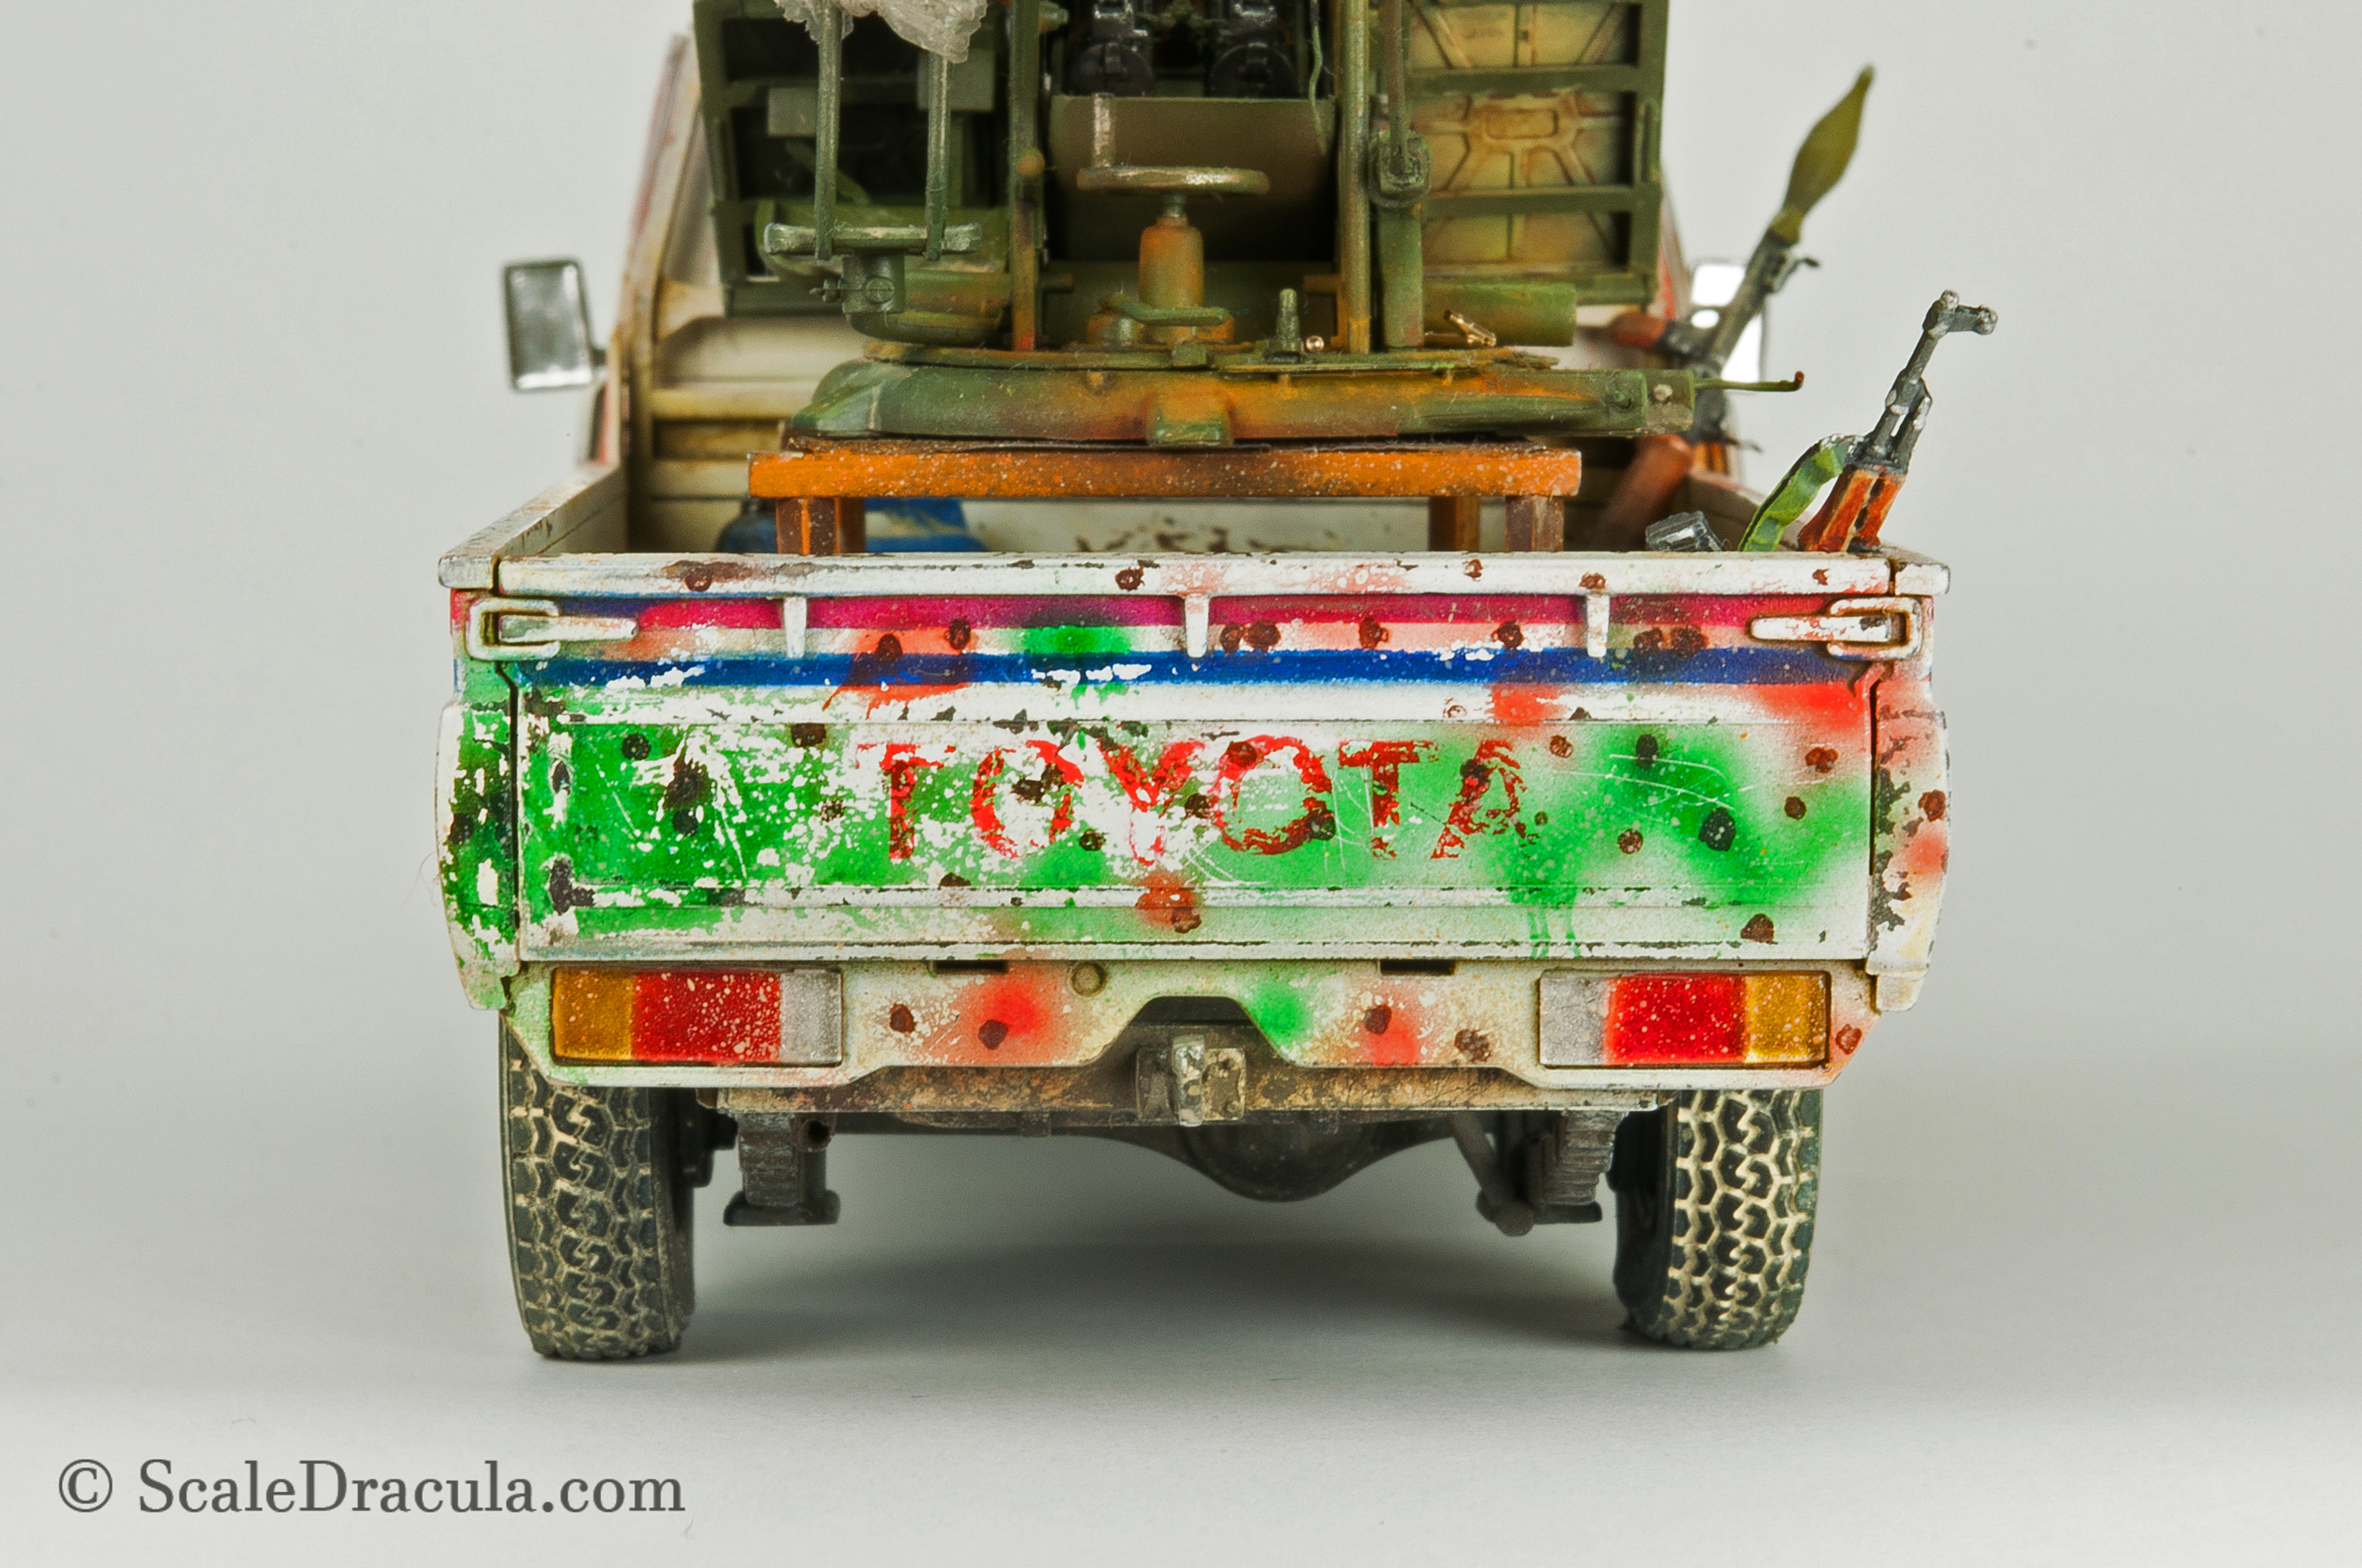 Toyota technical by Meng, final gallery